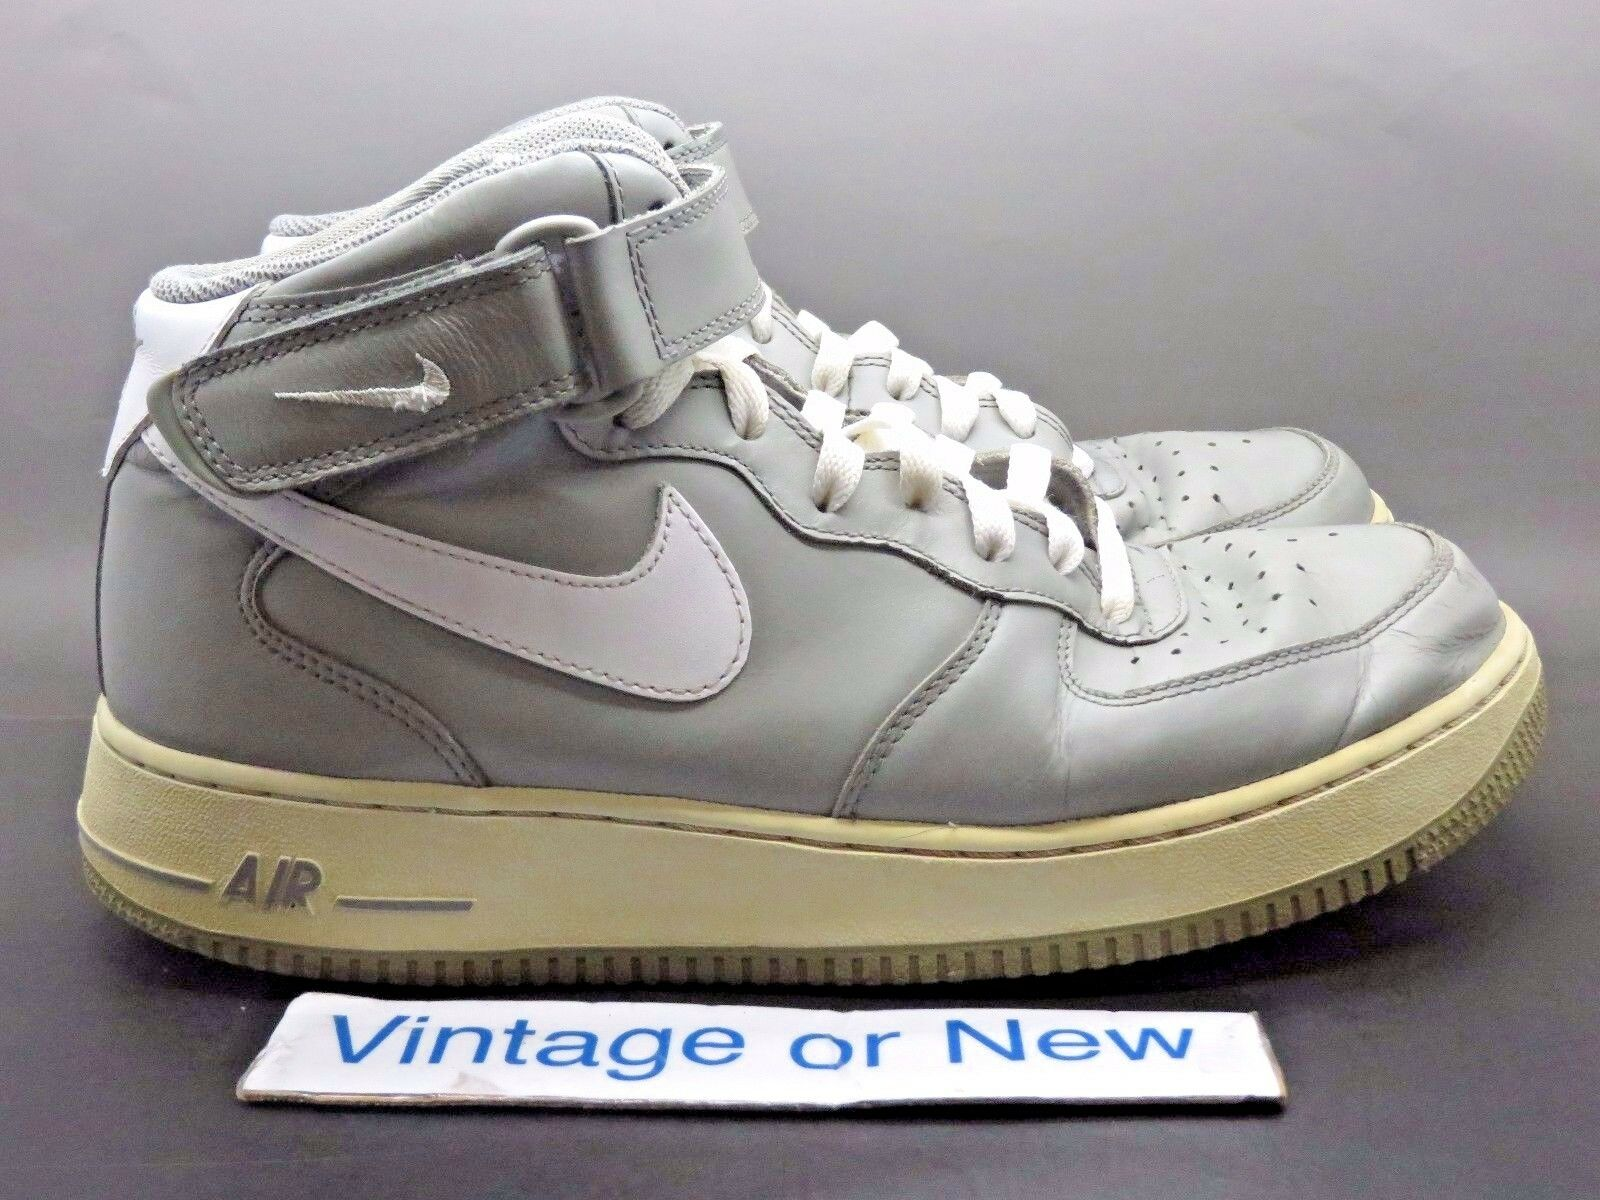 nike air force 1 mi - 2007 2007 2007 moyenne 315123-007 sz gris - blanc 0c7f98